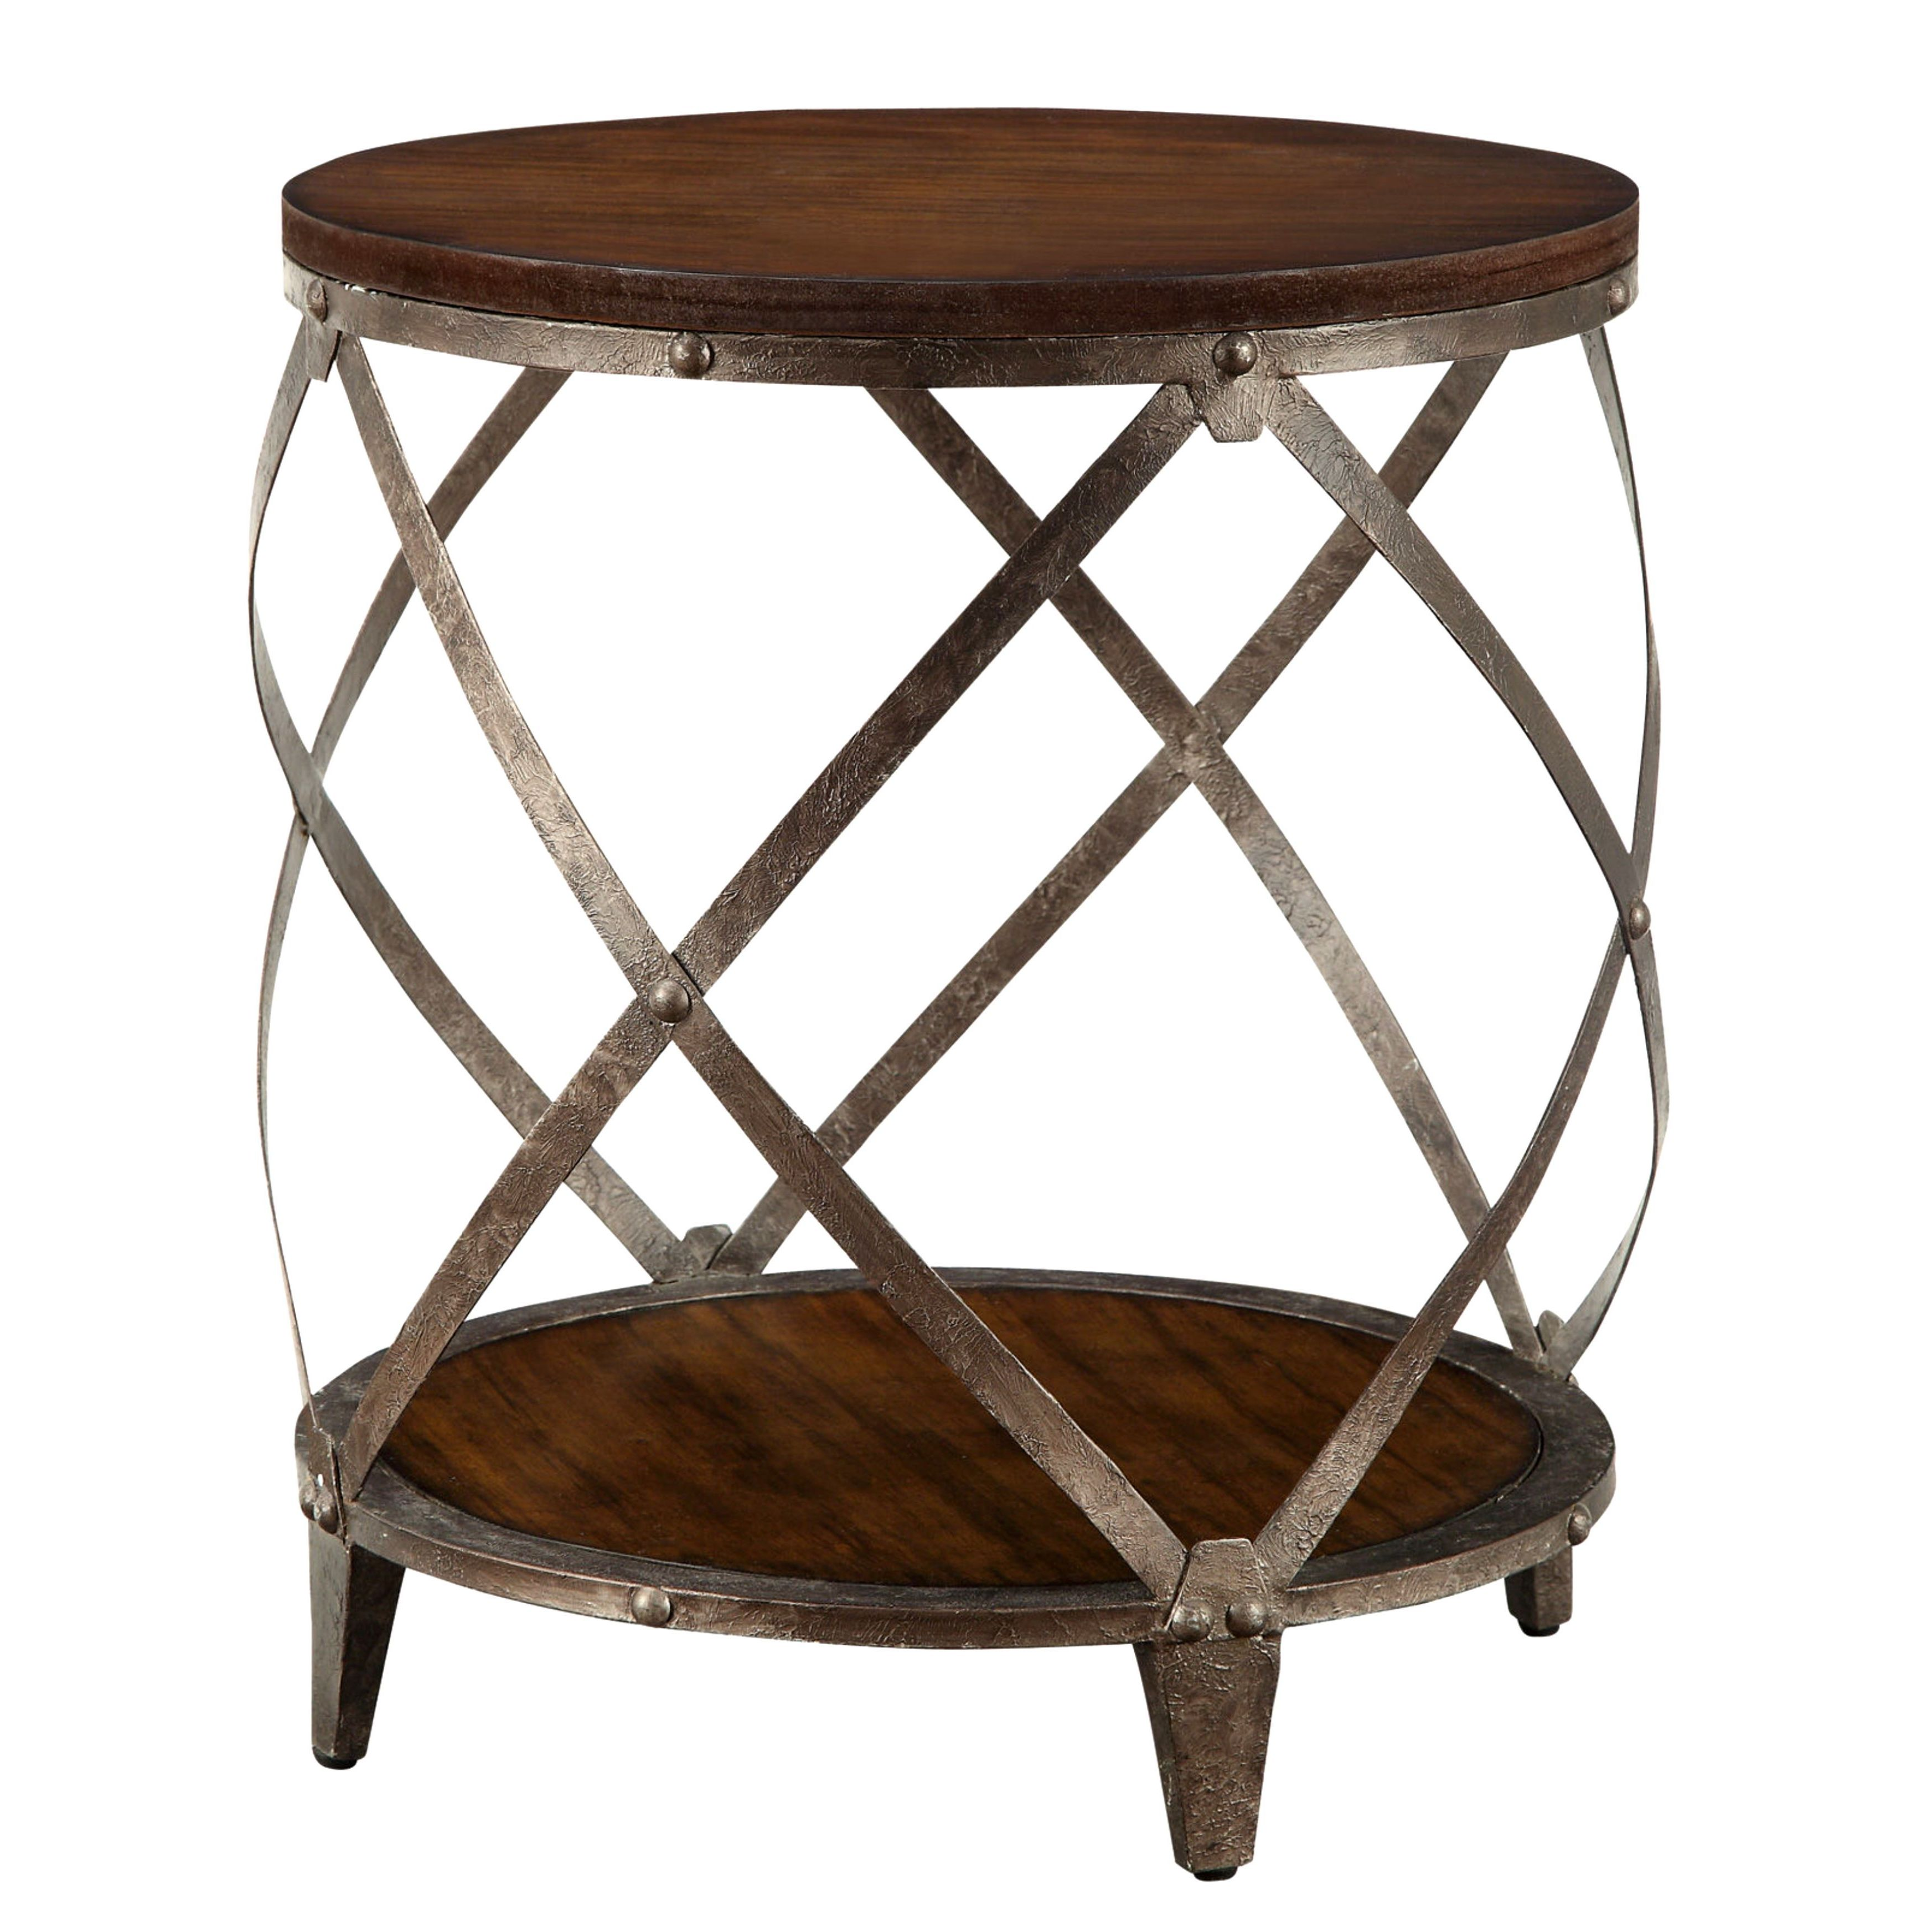 Shop Magnison Distressed Wood Metal Drum Shape Accent Table Free - Distressed wood and metal coffee table